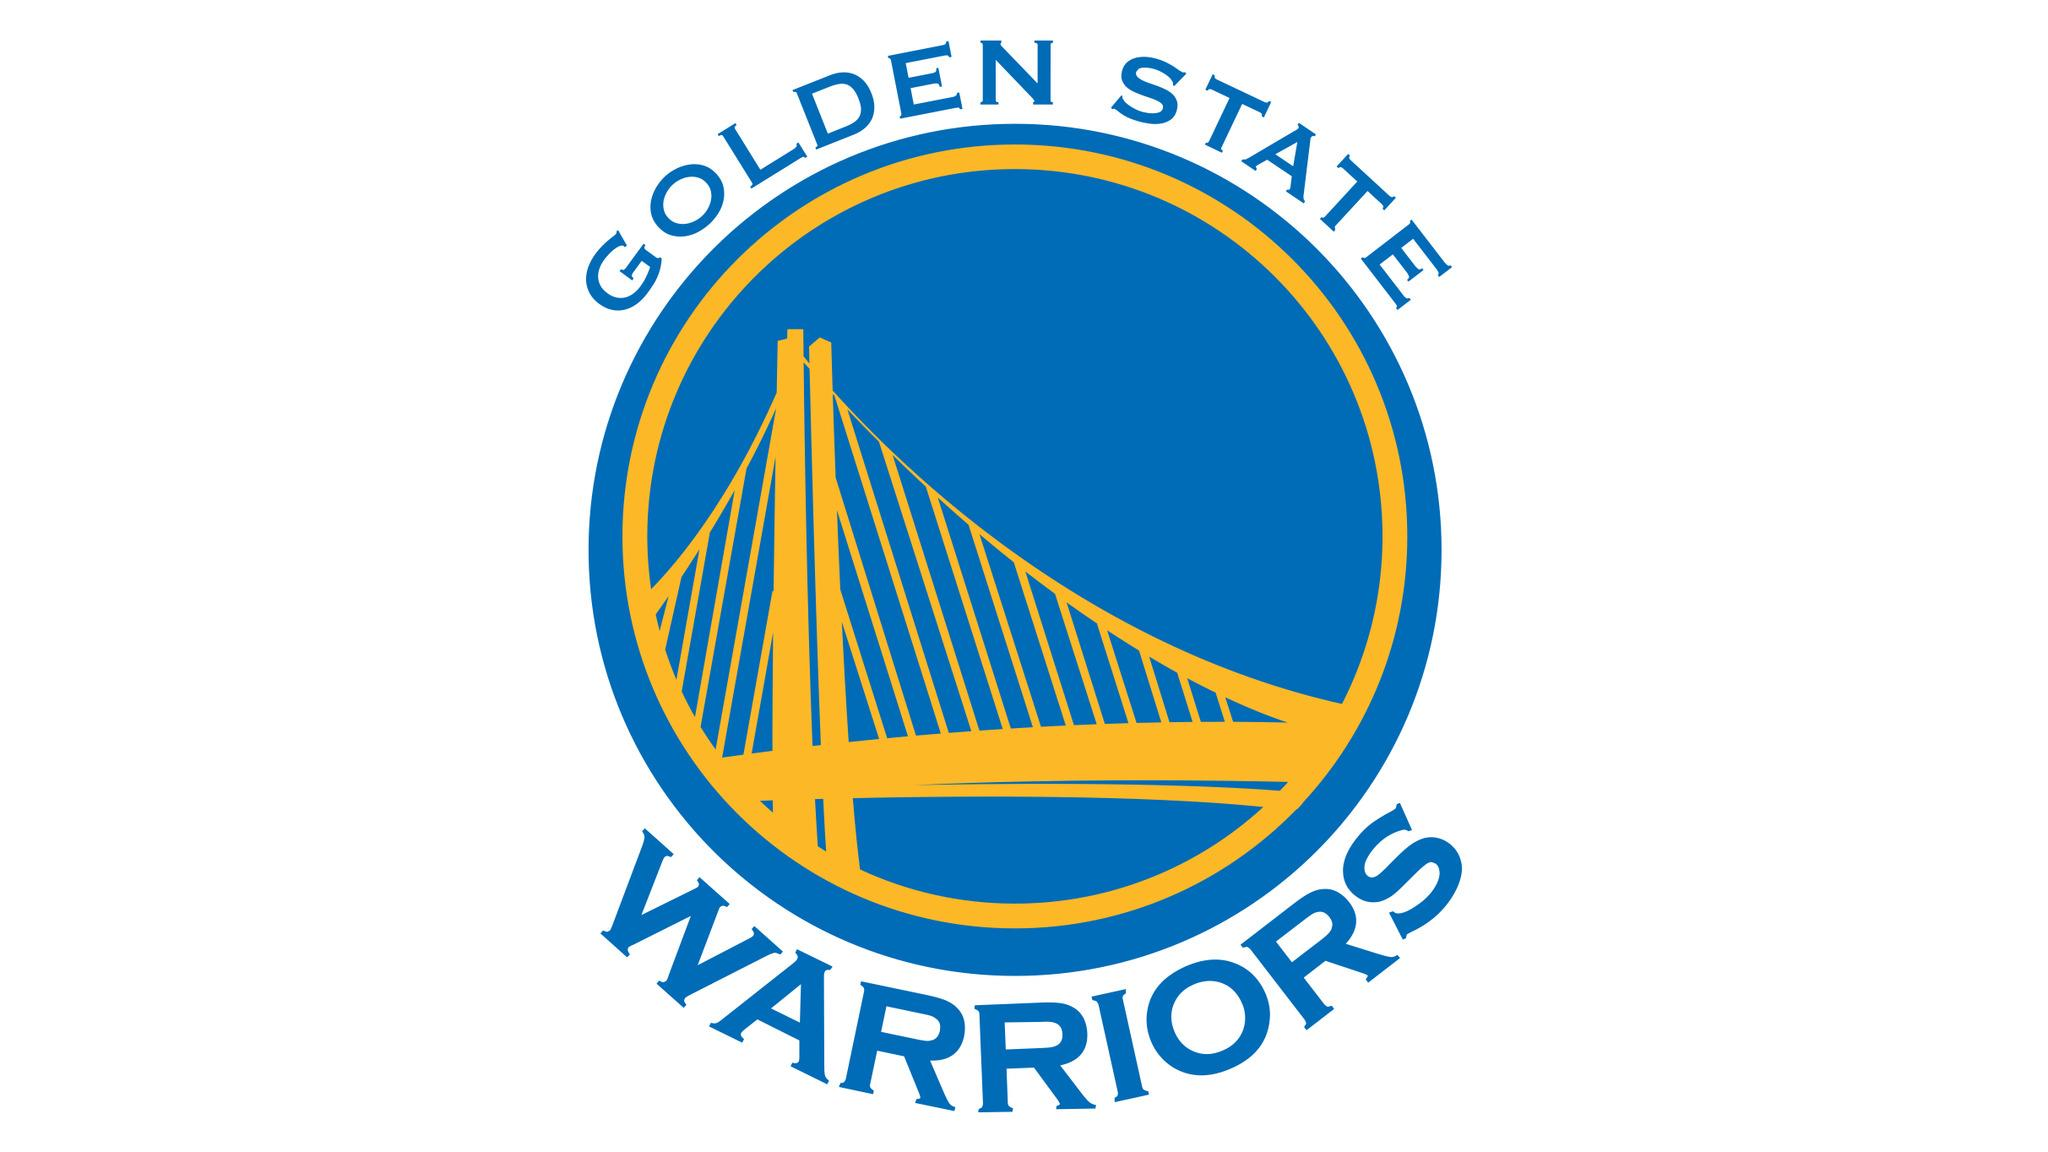 Golden State Warriors vs. New York Knicks at Oracle Arena